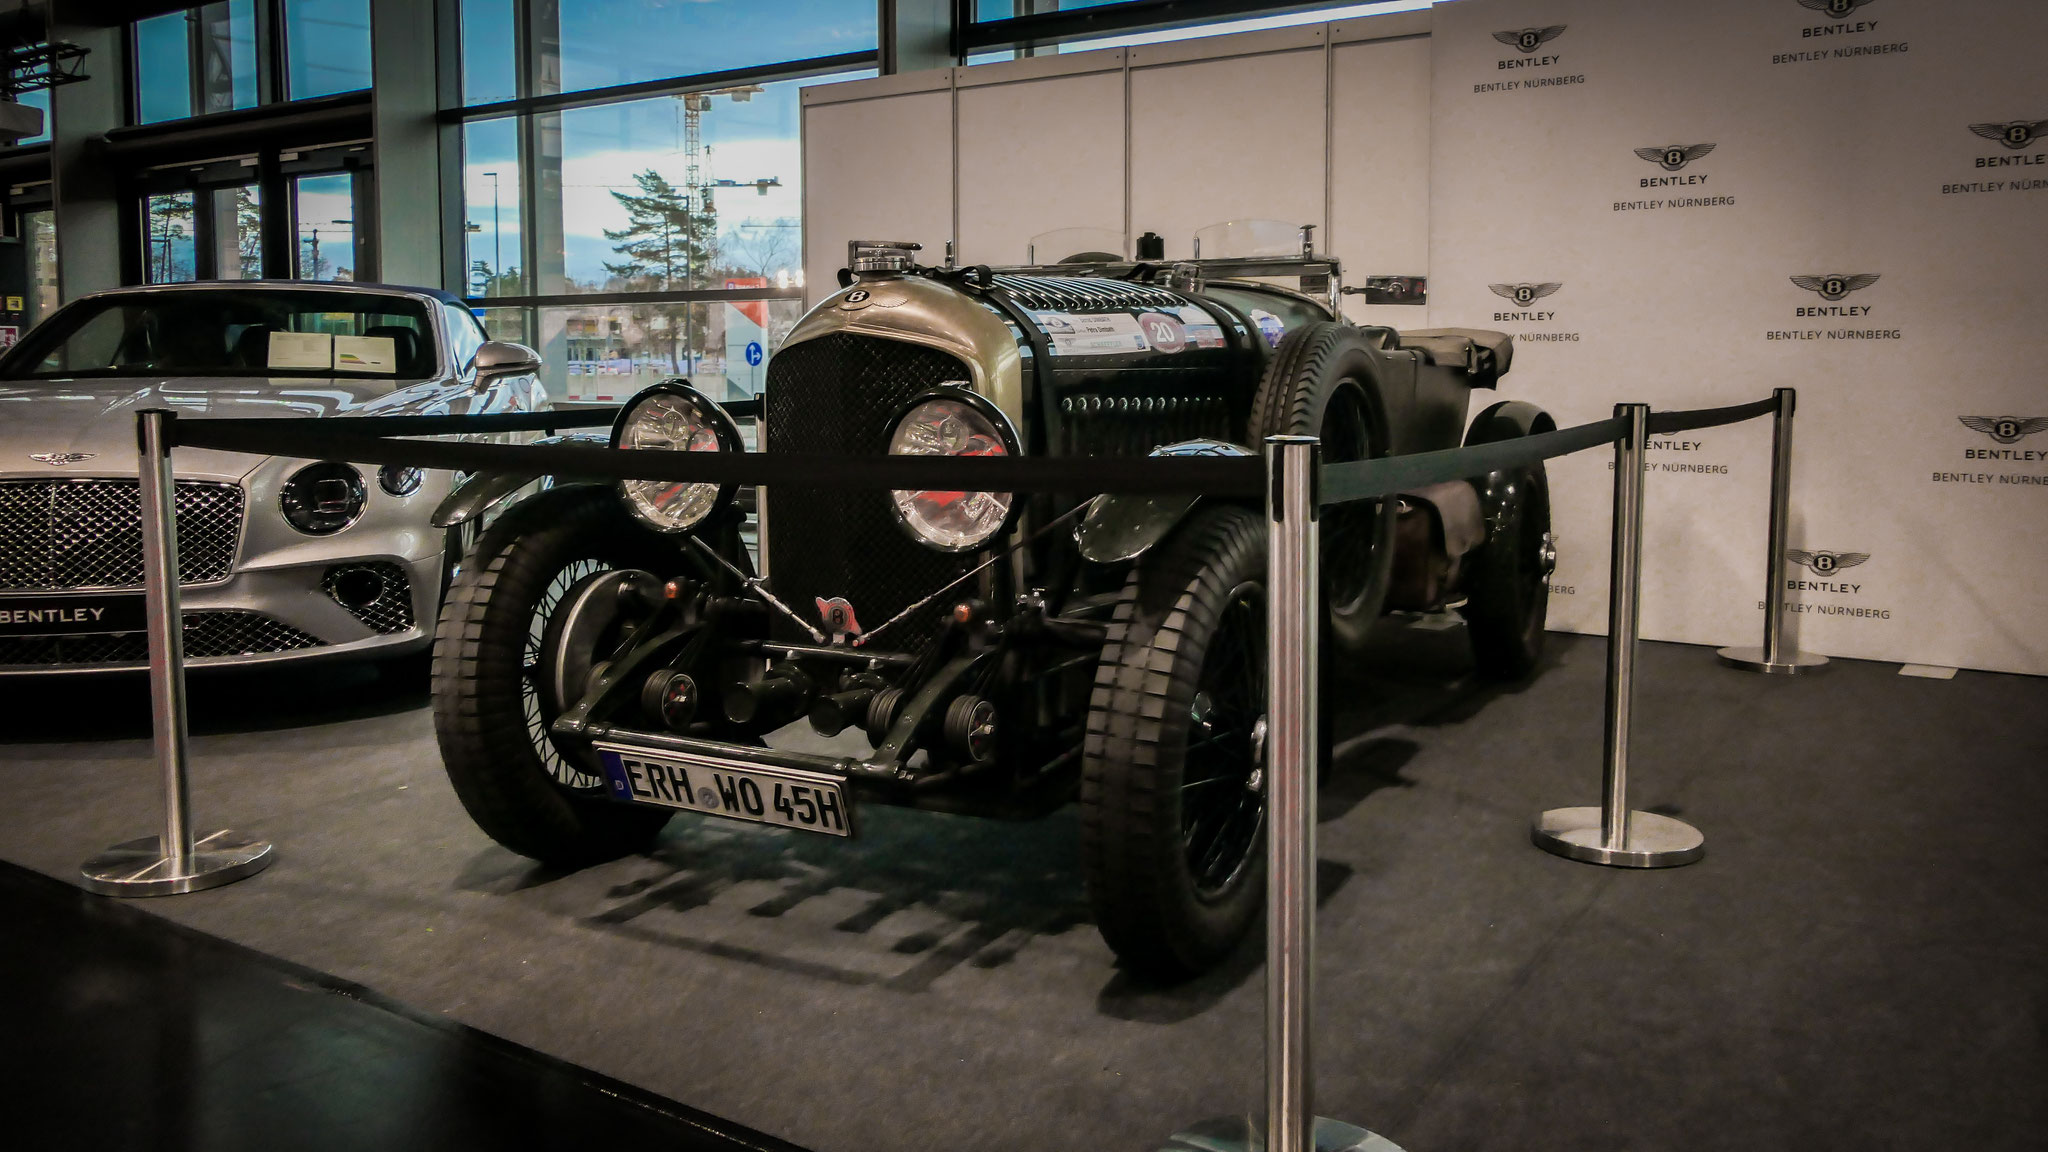 Bentley 4 1/2 Litre Blower - ERH-WO-45H